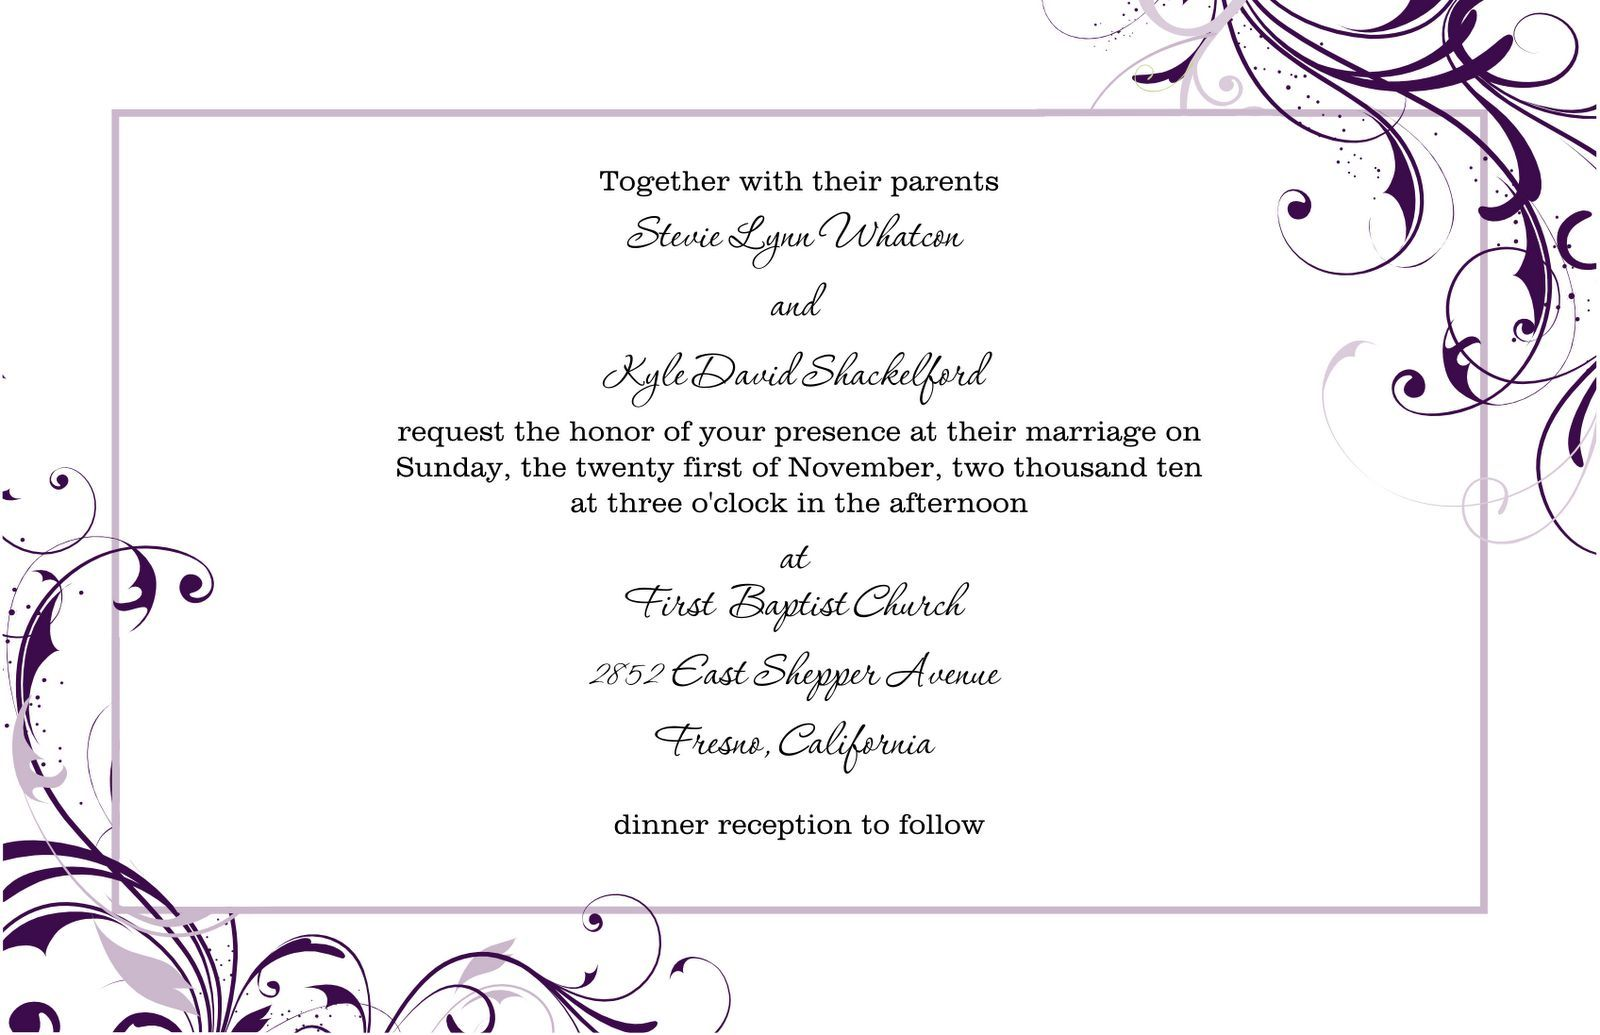 Free Blank Wedding Invitation Templates For Microsoft Word  Free Invitation Templates For Word